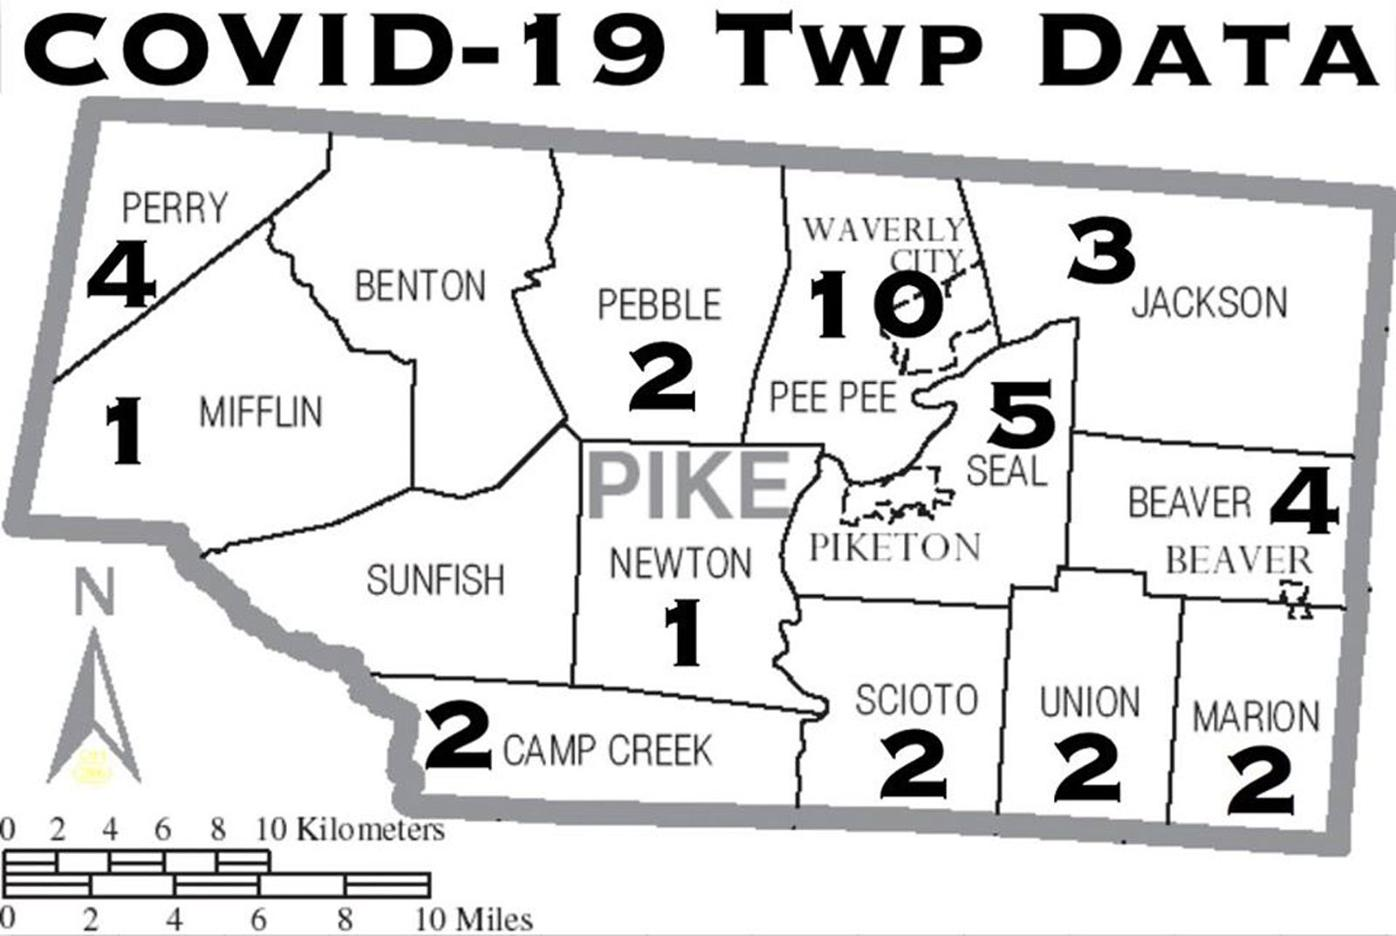 COVID-19 Township Data for Pike County - July 17